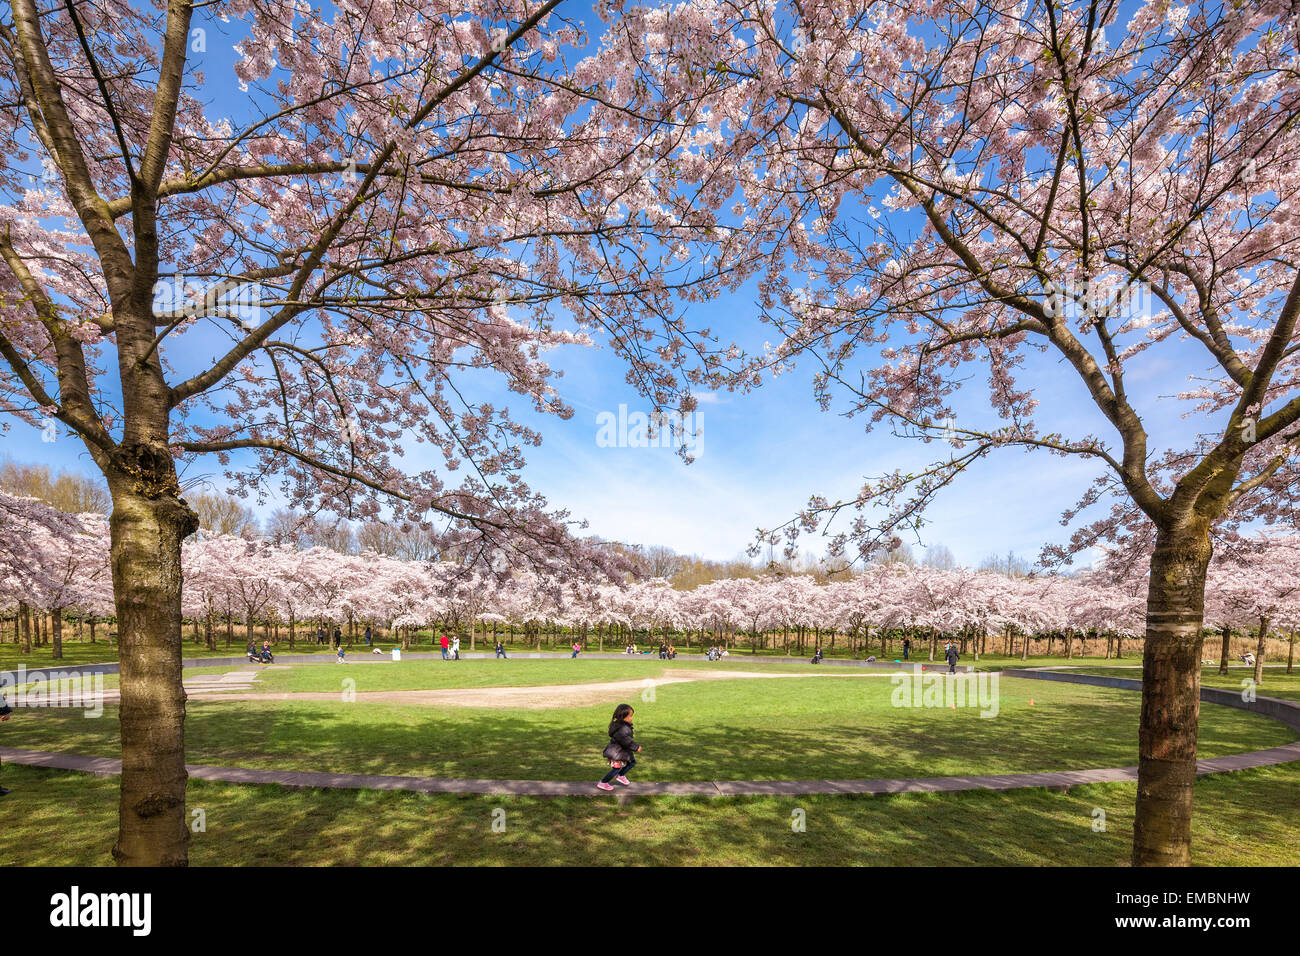 Amsterdam Amsterdamse Bos Bloesempark Cherry Blossom Park. A little Asian girl is running underneath blossoms in - Stock Image